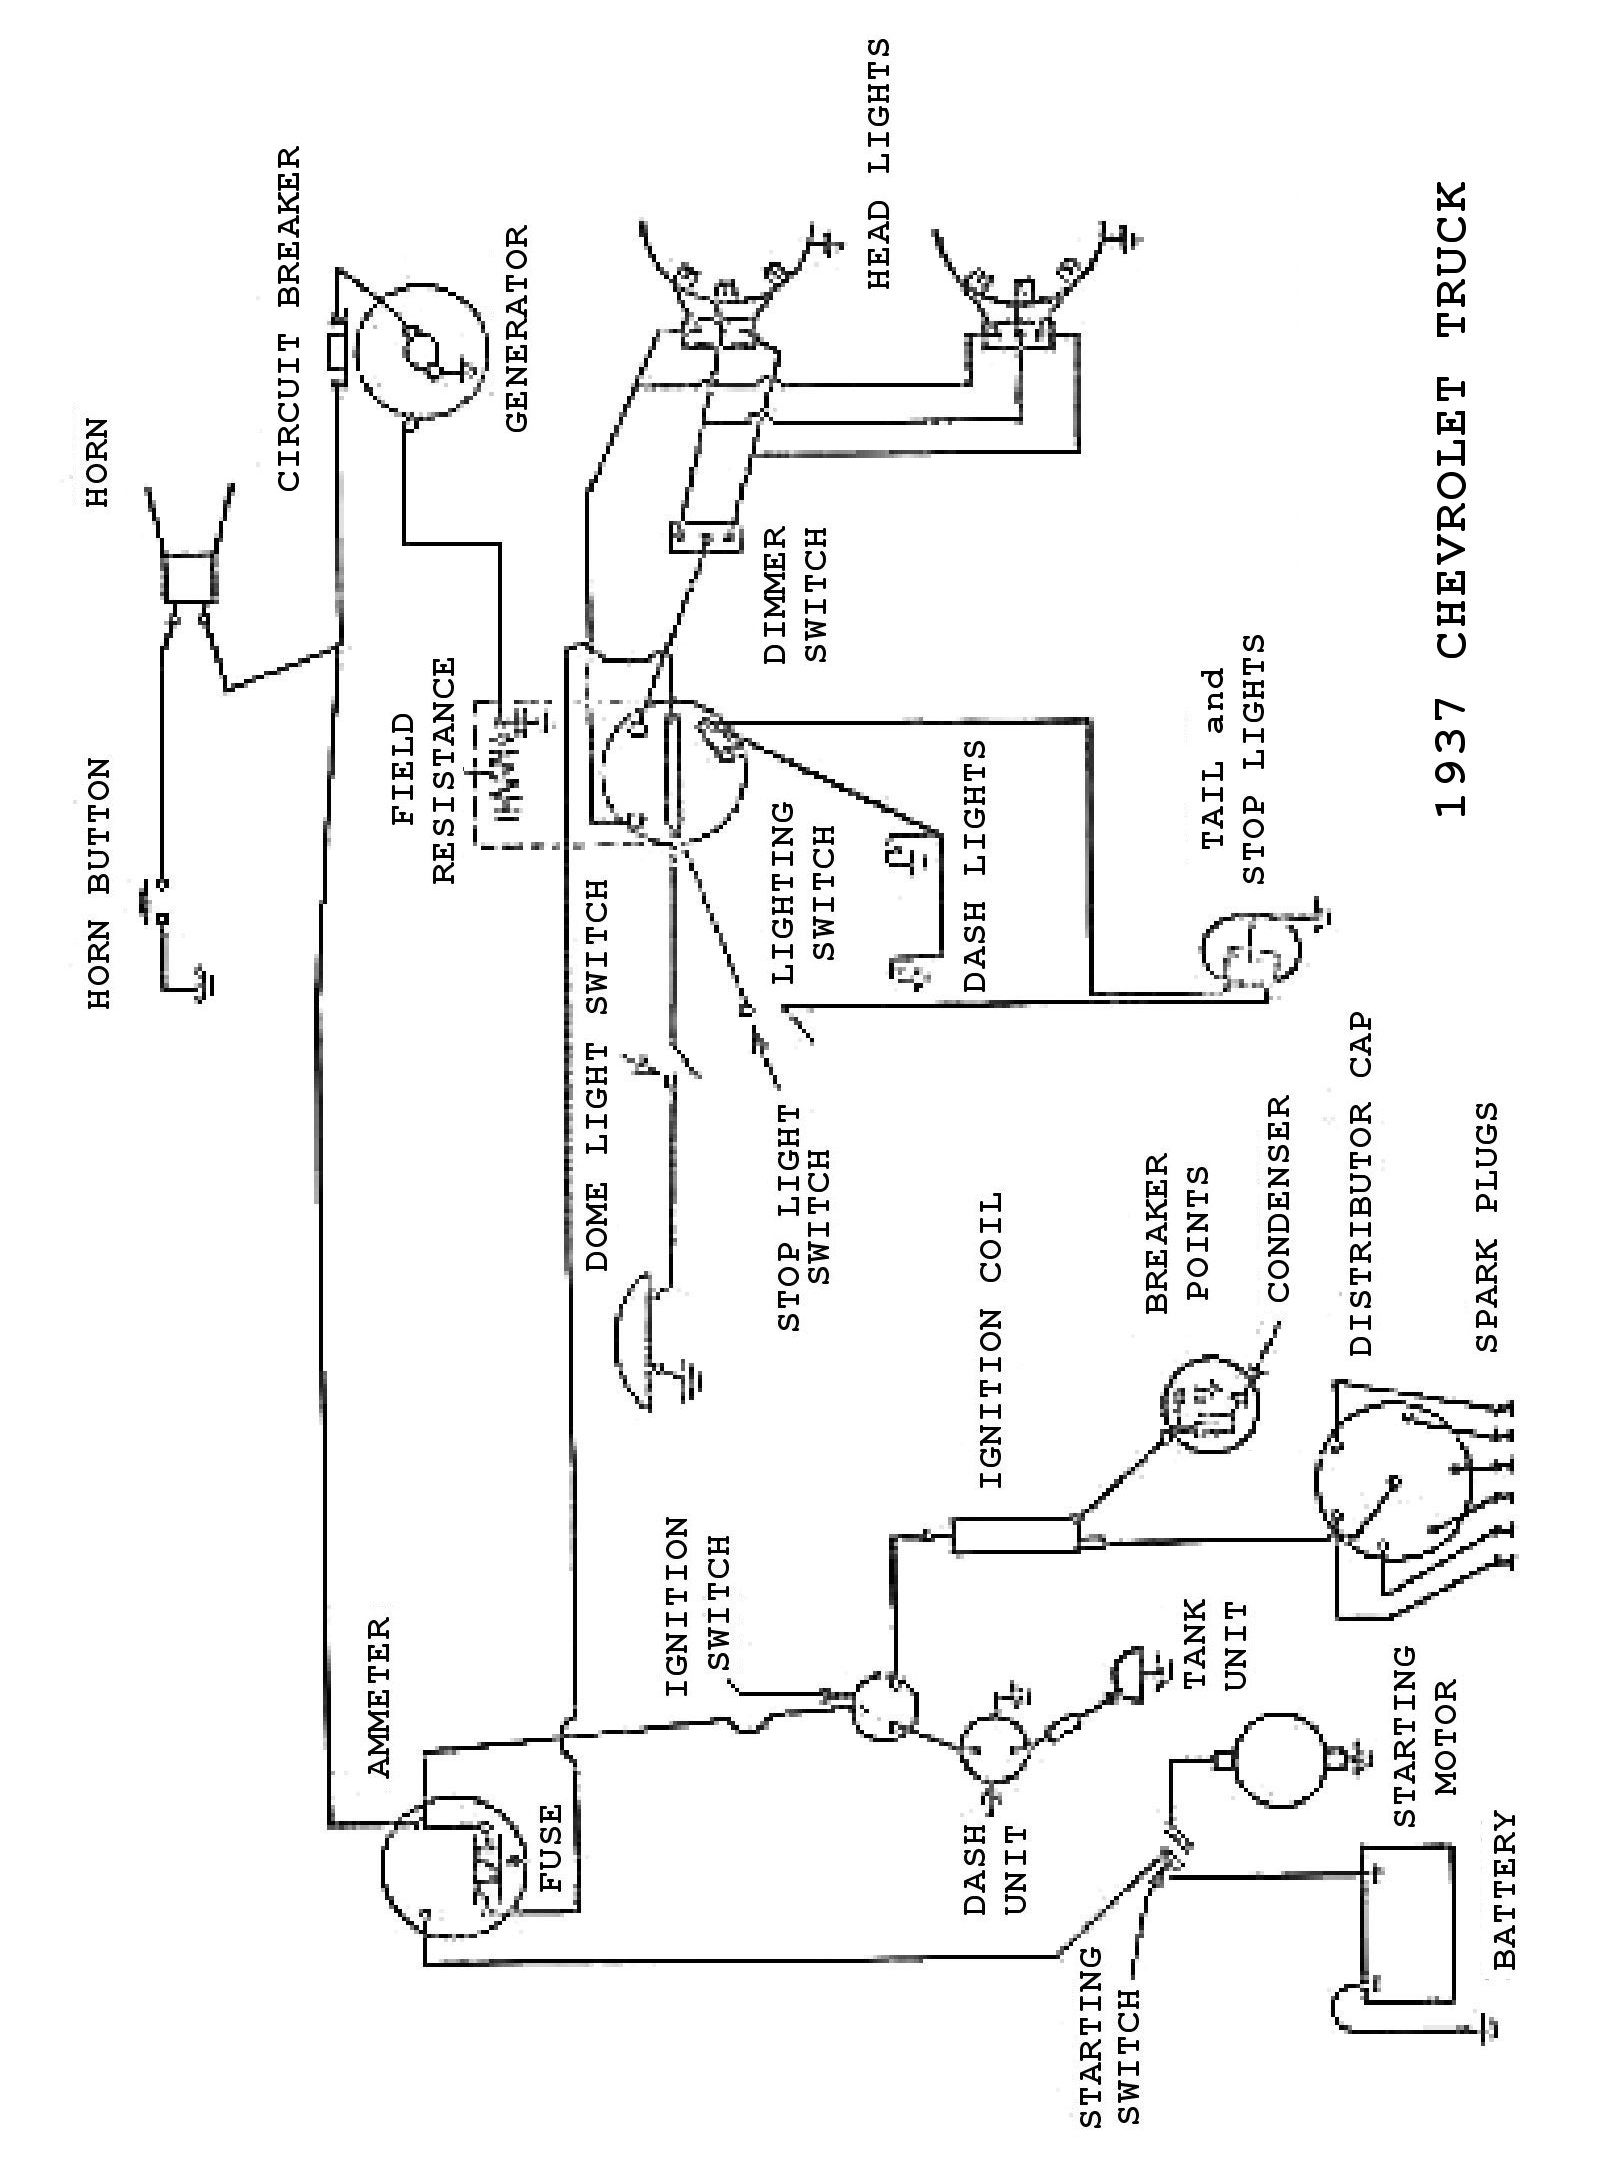 1948 ford truck wiring harness diagram